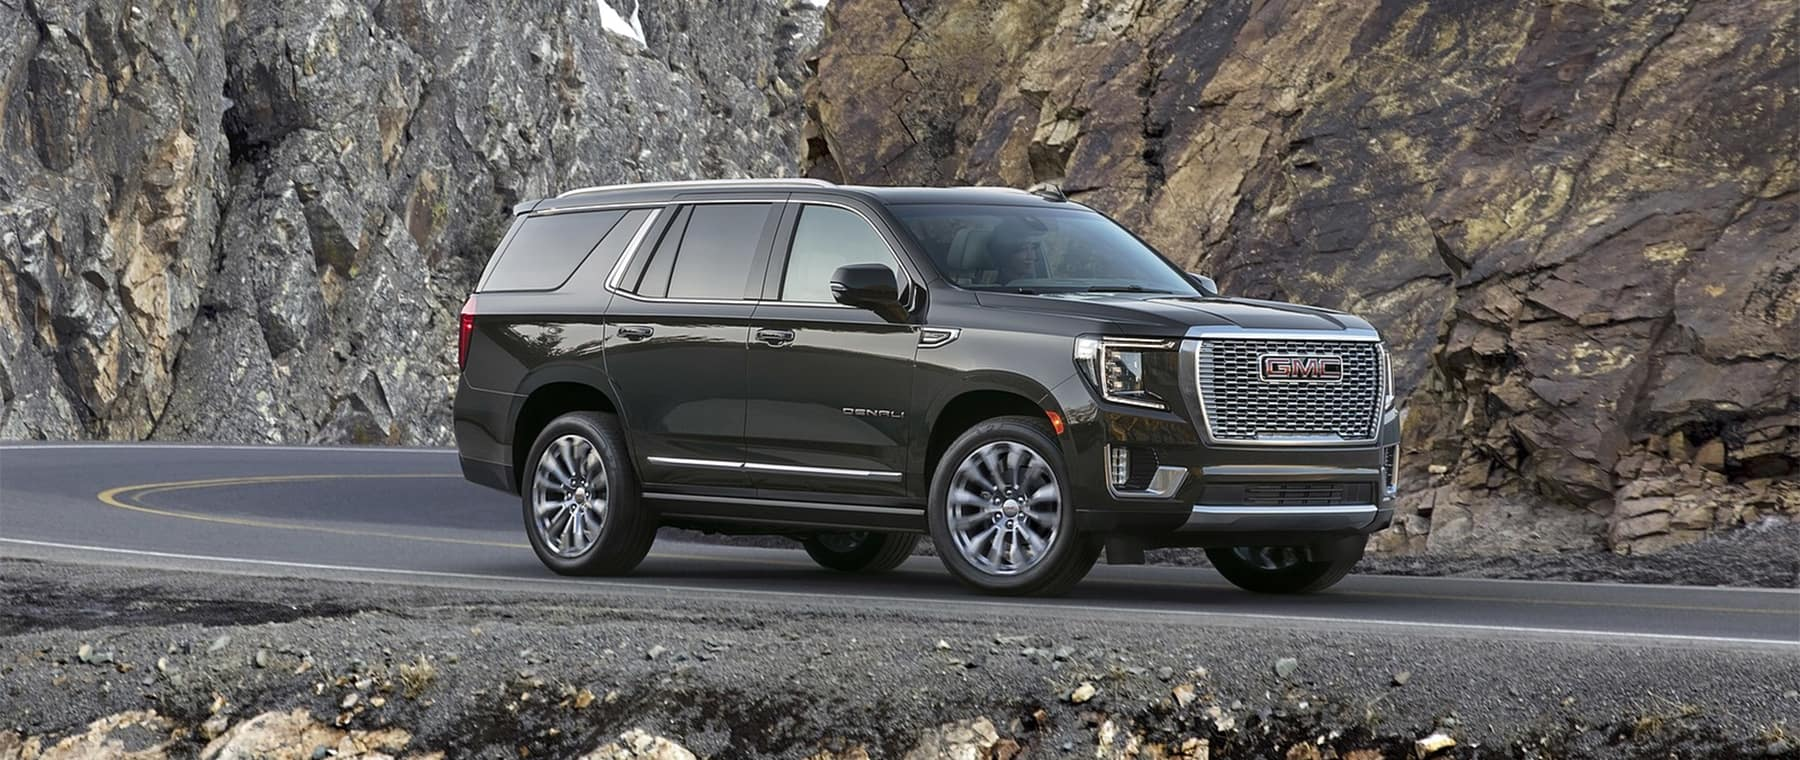 2021 GMC Yukon black on side road